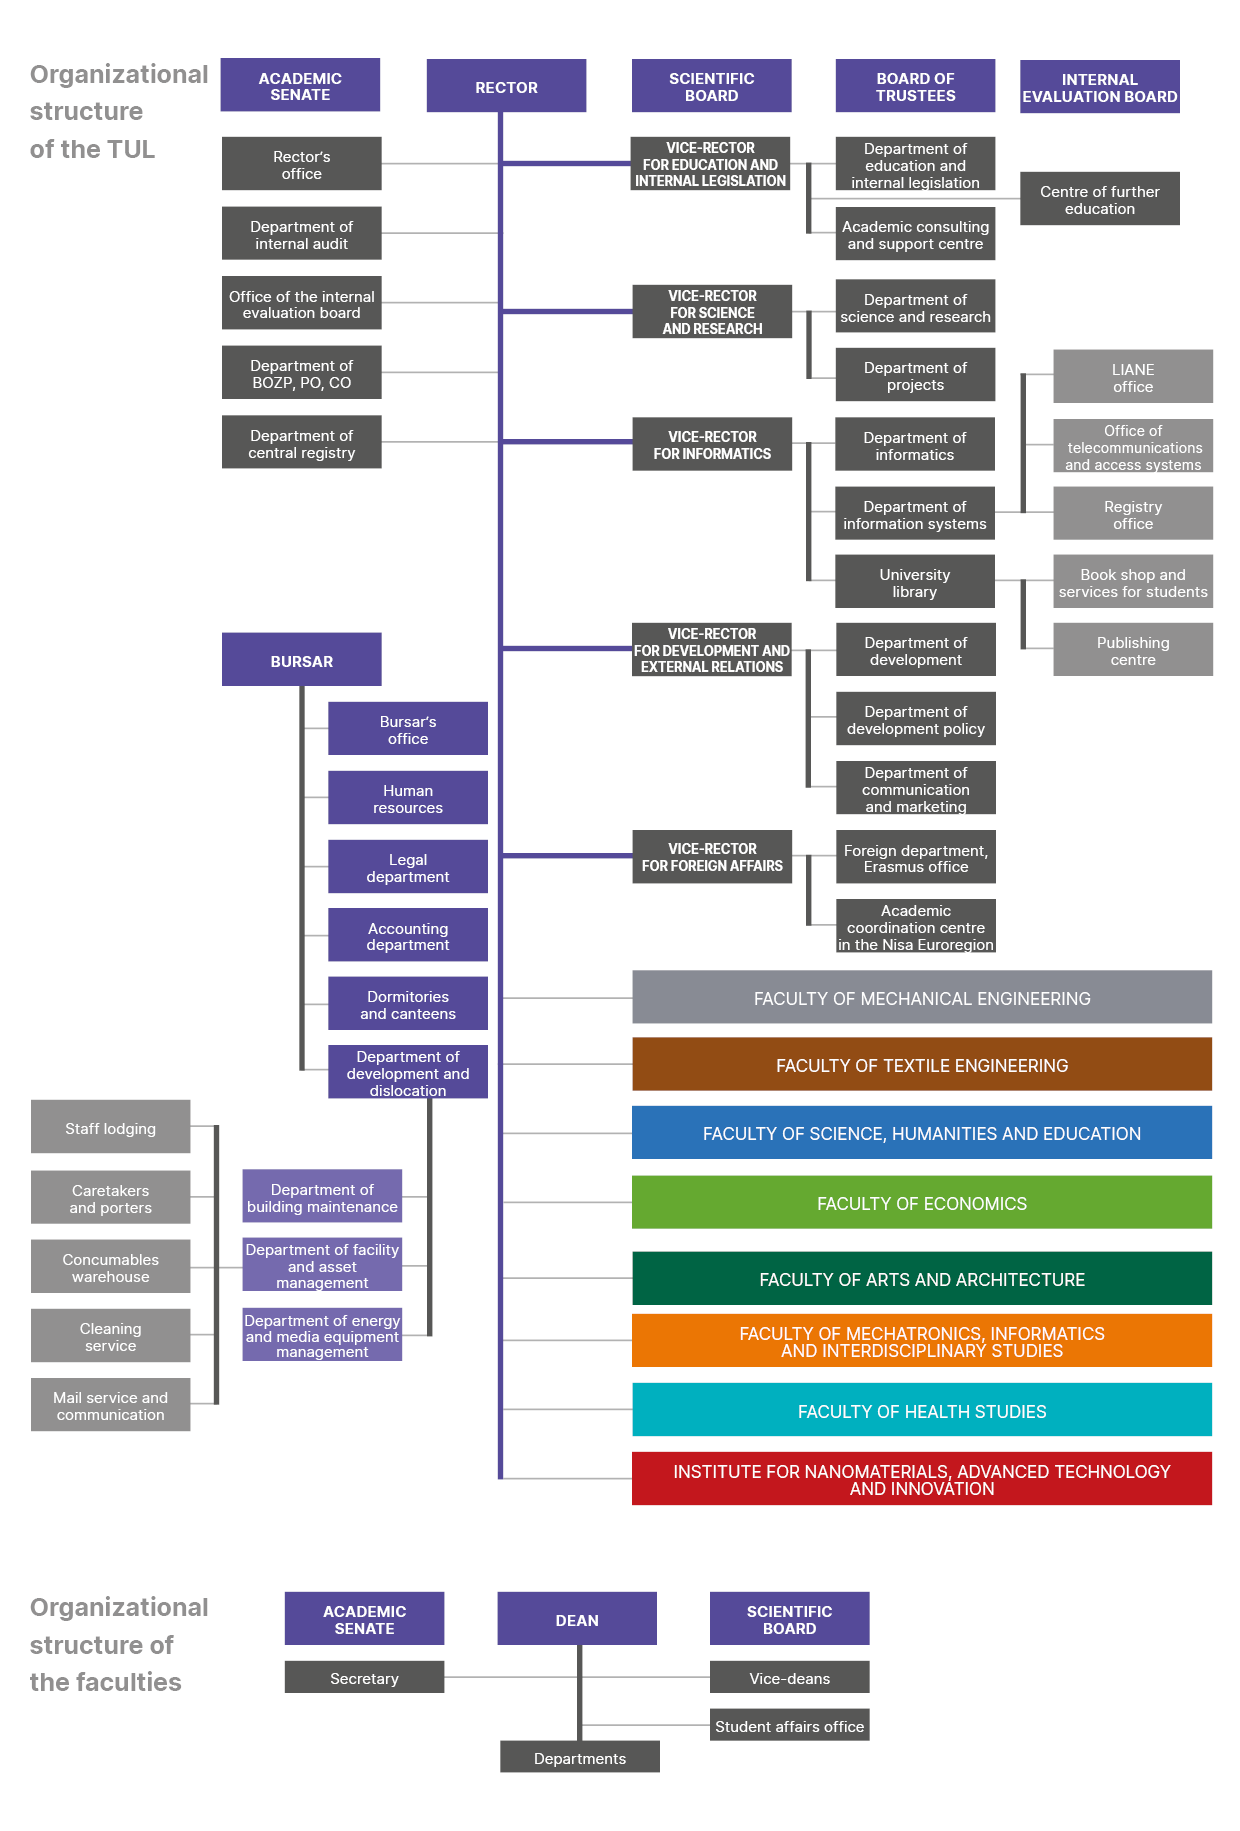 Organizational structure of the TUL